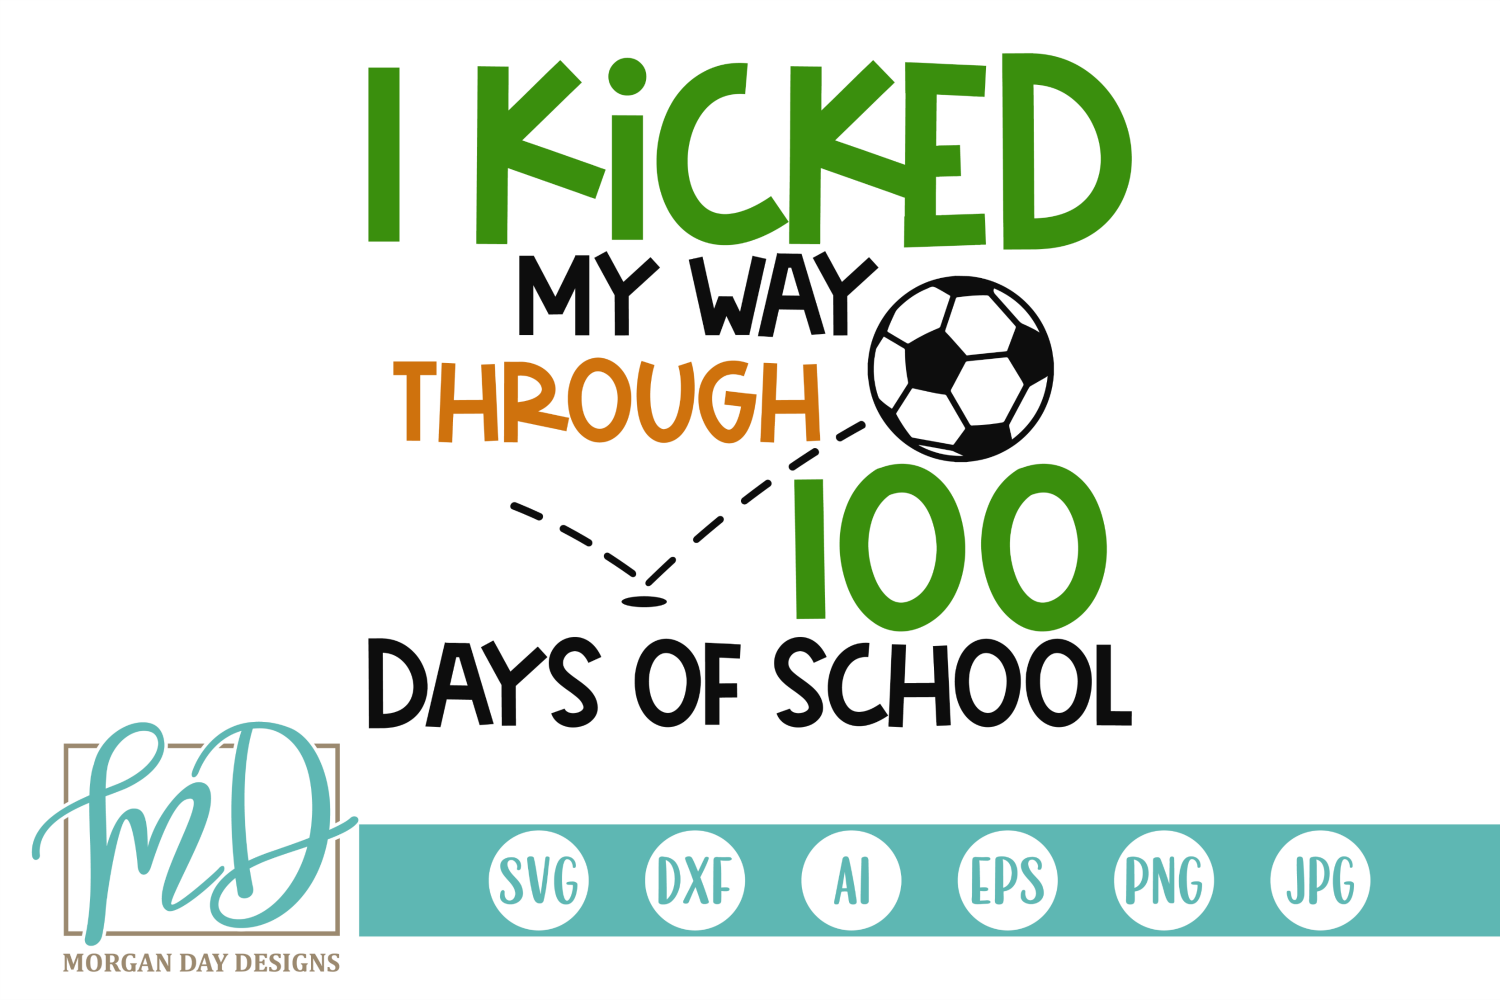 Download Free I Kicked My Way Through 100 Days Graphic By Morgan Day Designs for Cricut Explore, Silhouette and other cutting machines.